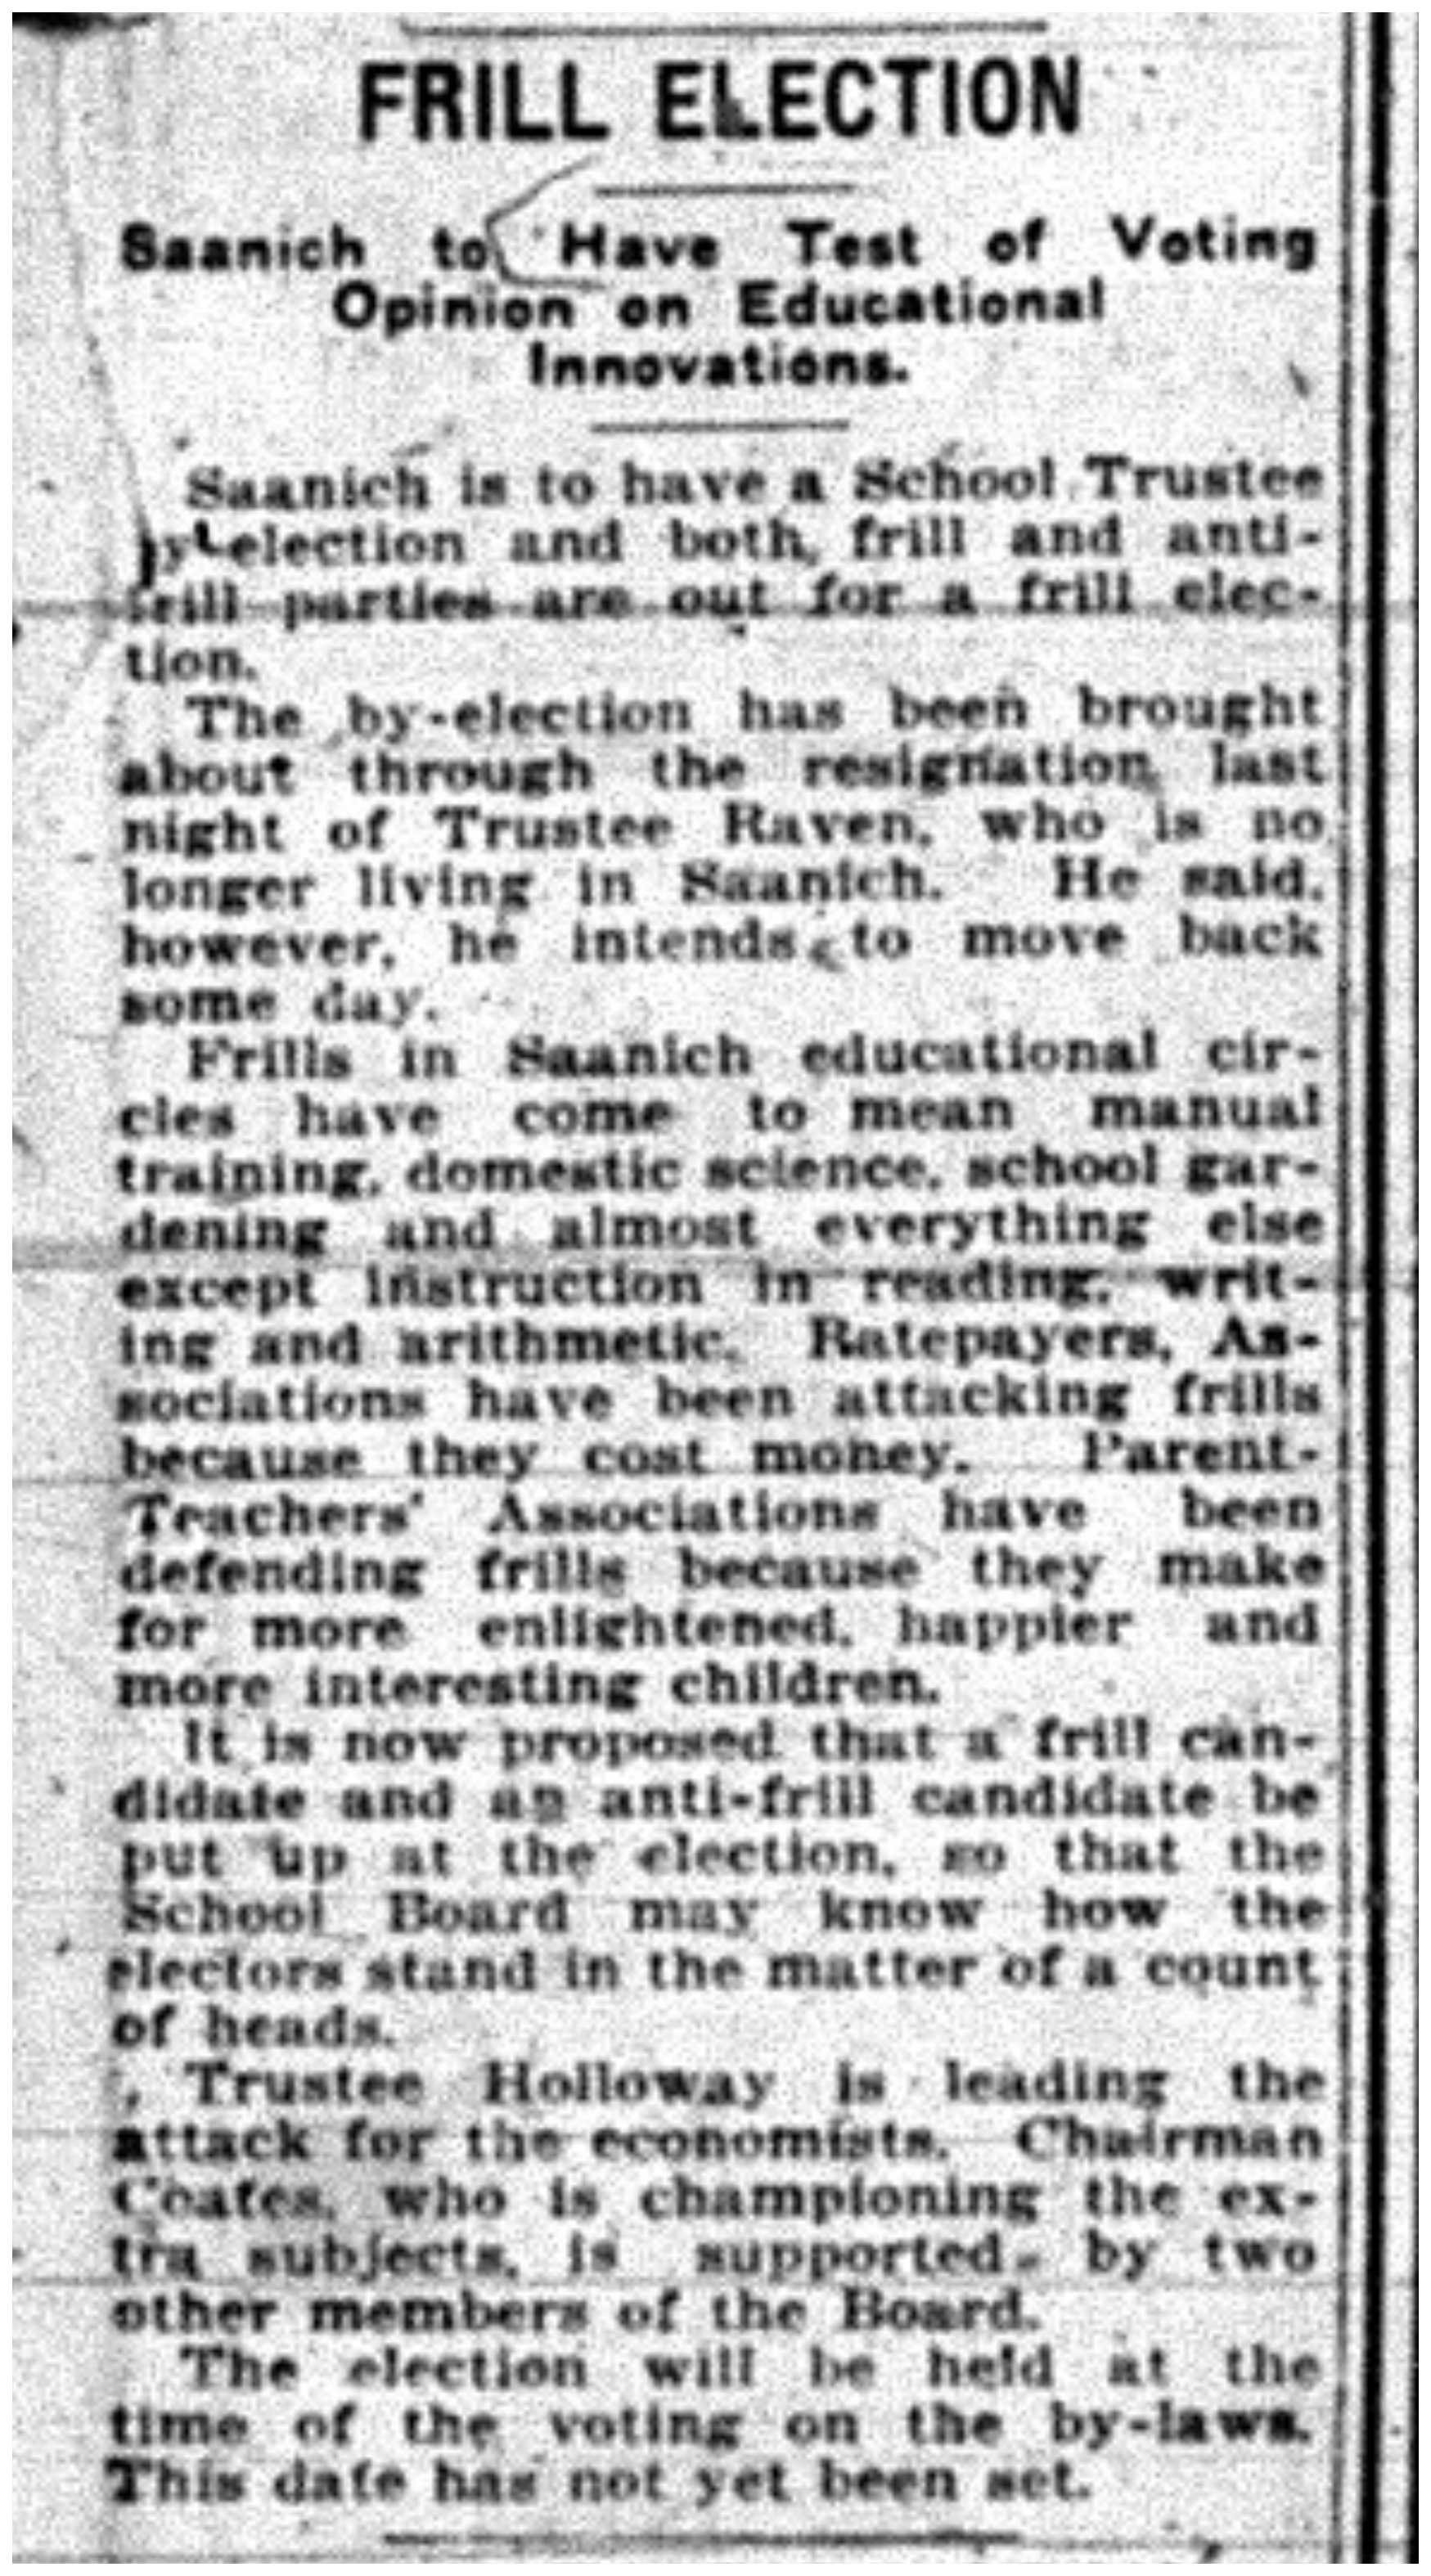 """""""Frill Election: Saanich To Have Test of Voting Opinion on Educational Innovations"""""""